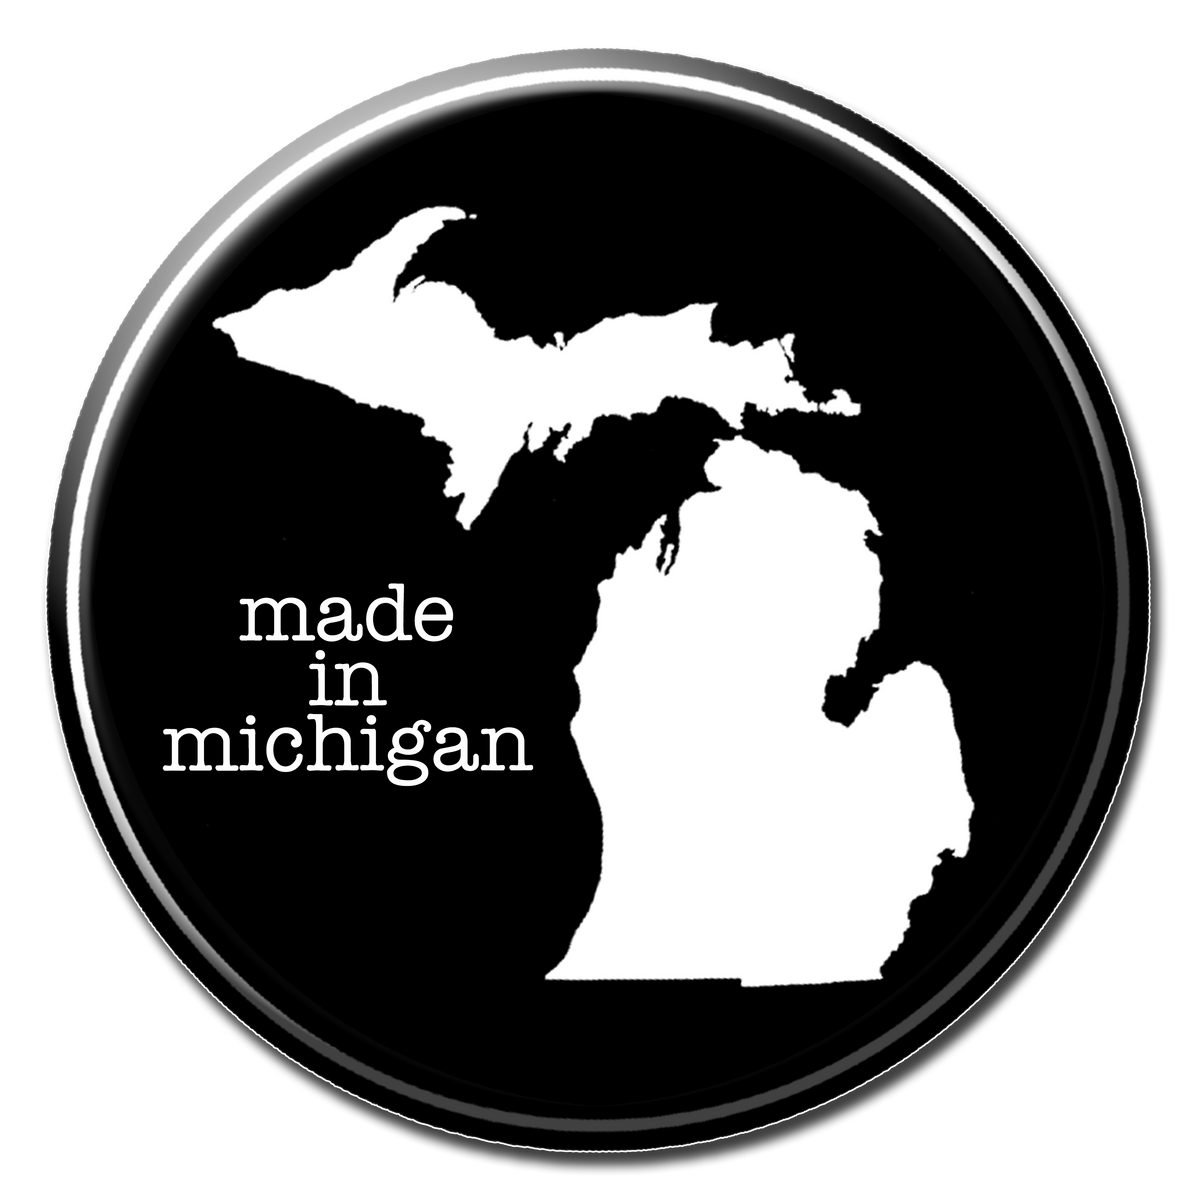 Made In Michigan >> Shop Michigan Related Products With Michigan Proud At Fc